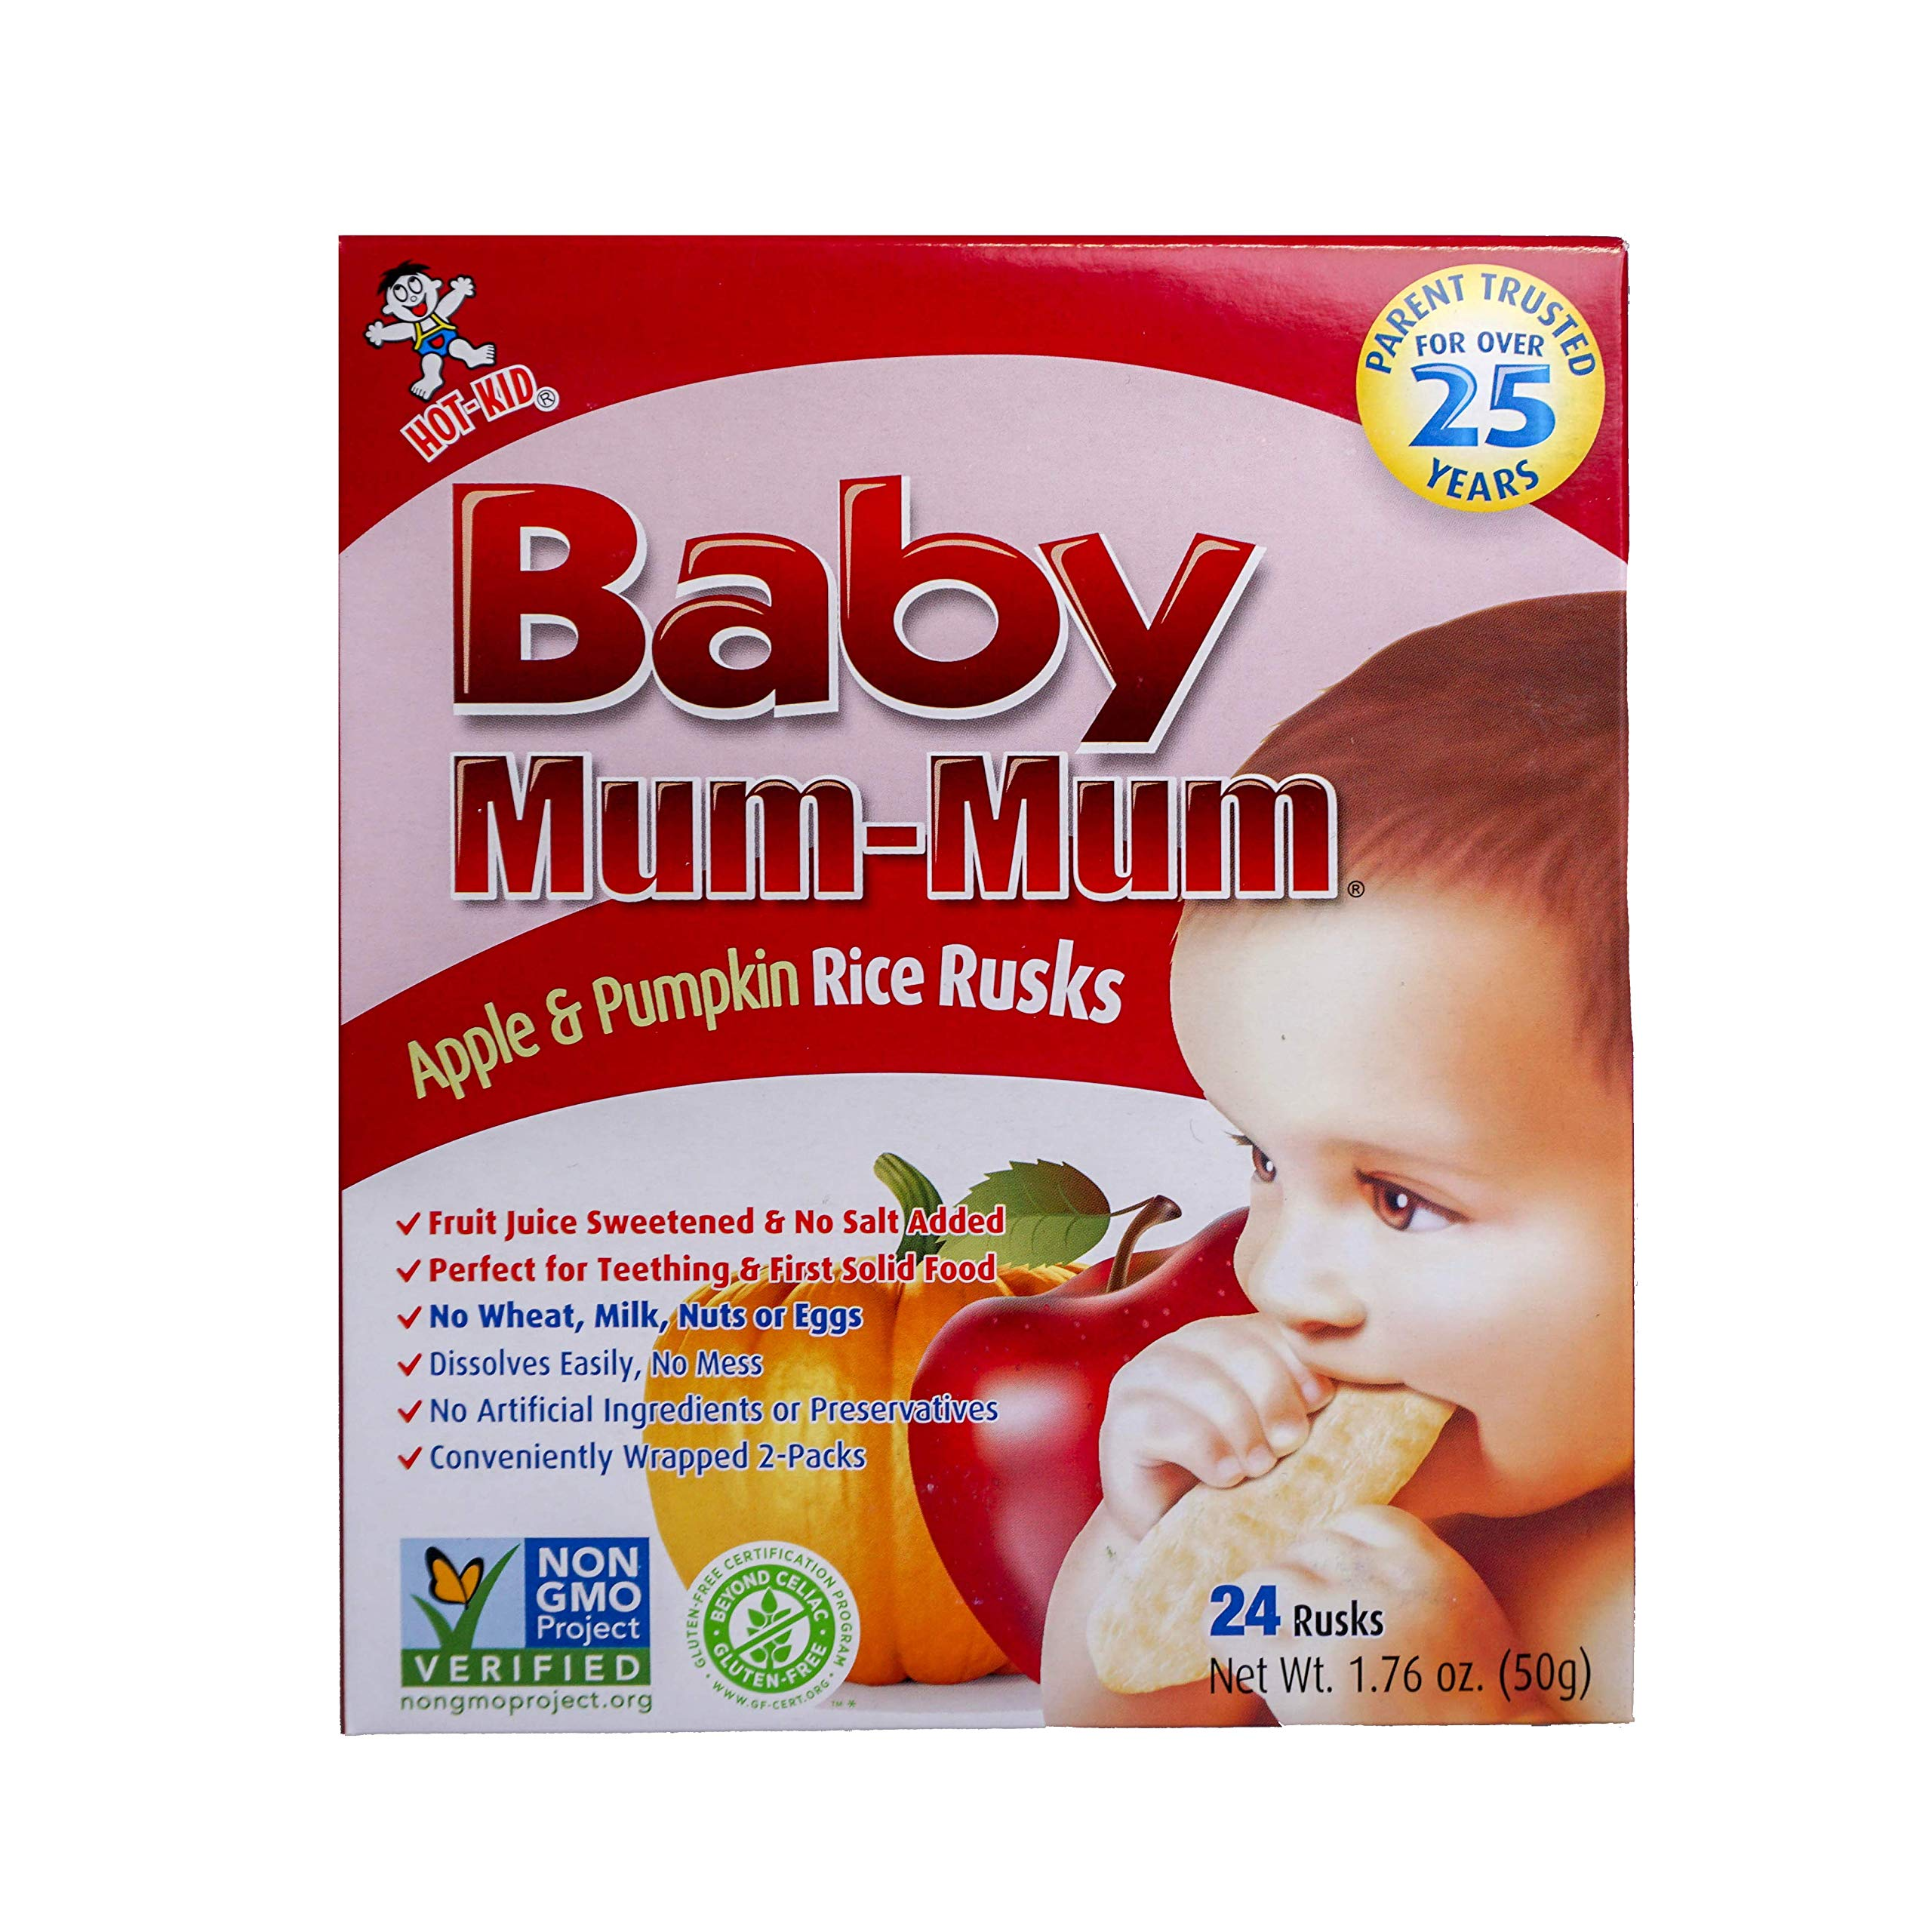 Hot-Kid Baby Mum-Mum Rice Rusks, Vegetable, 24 Pieces